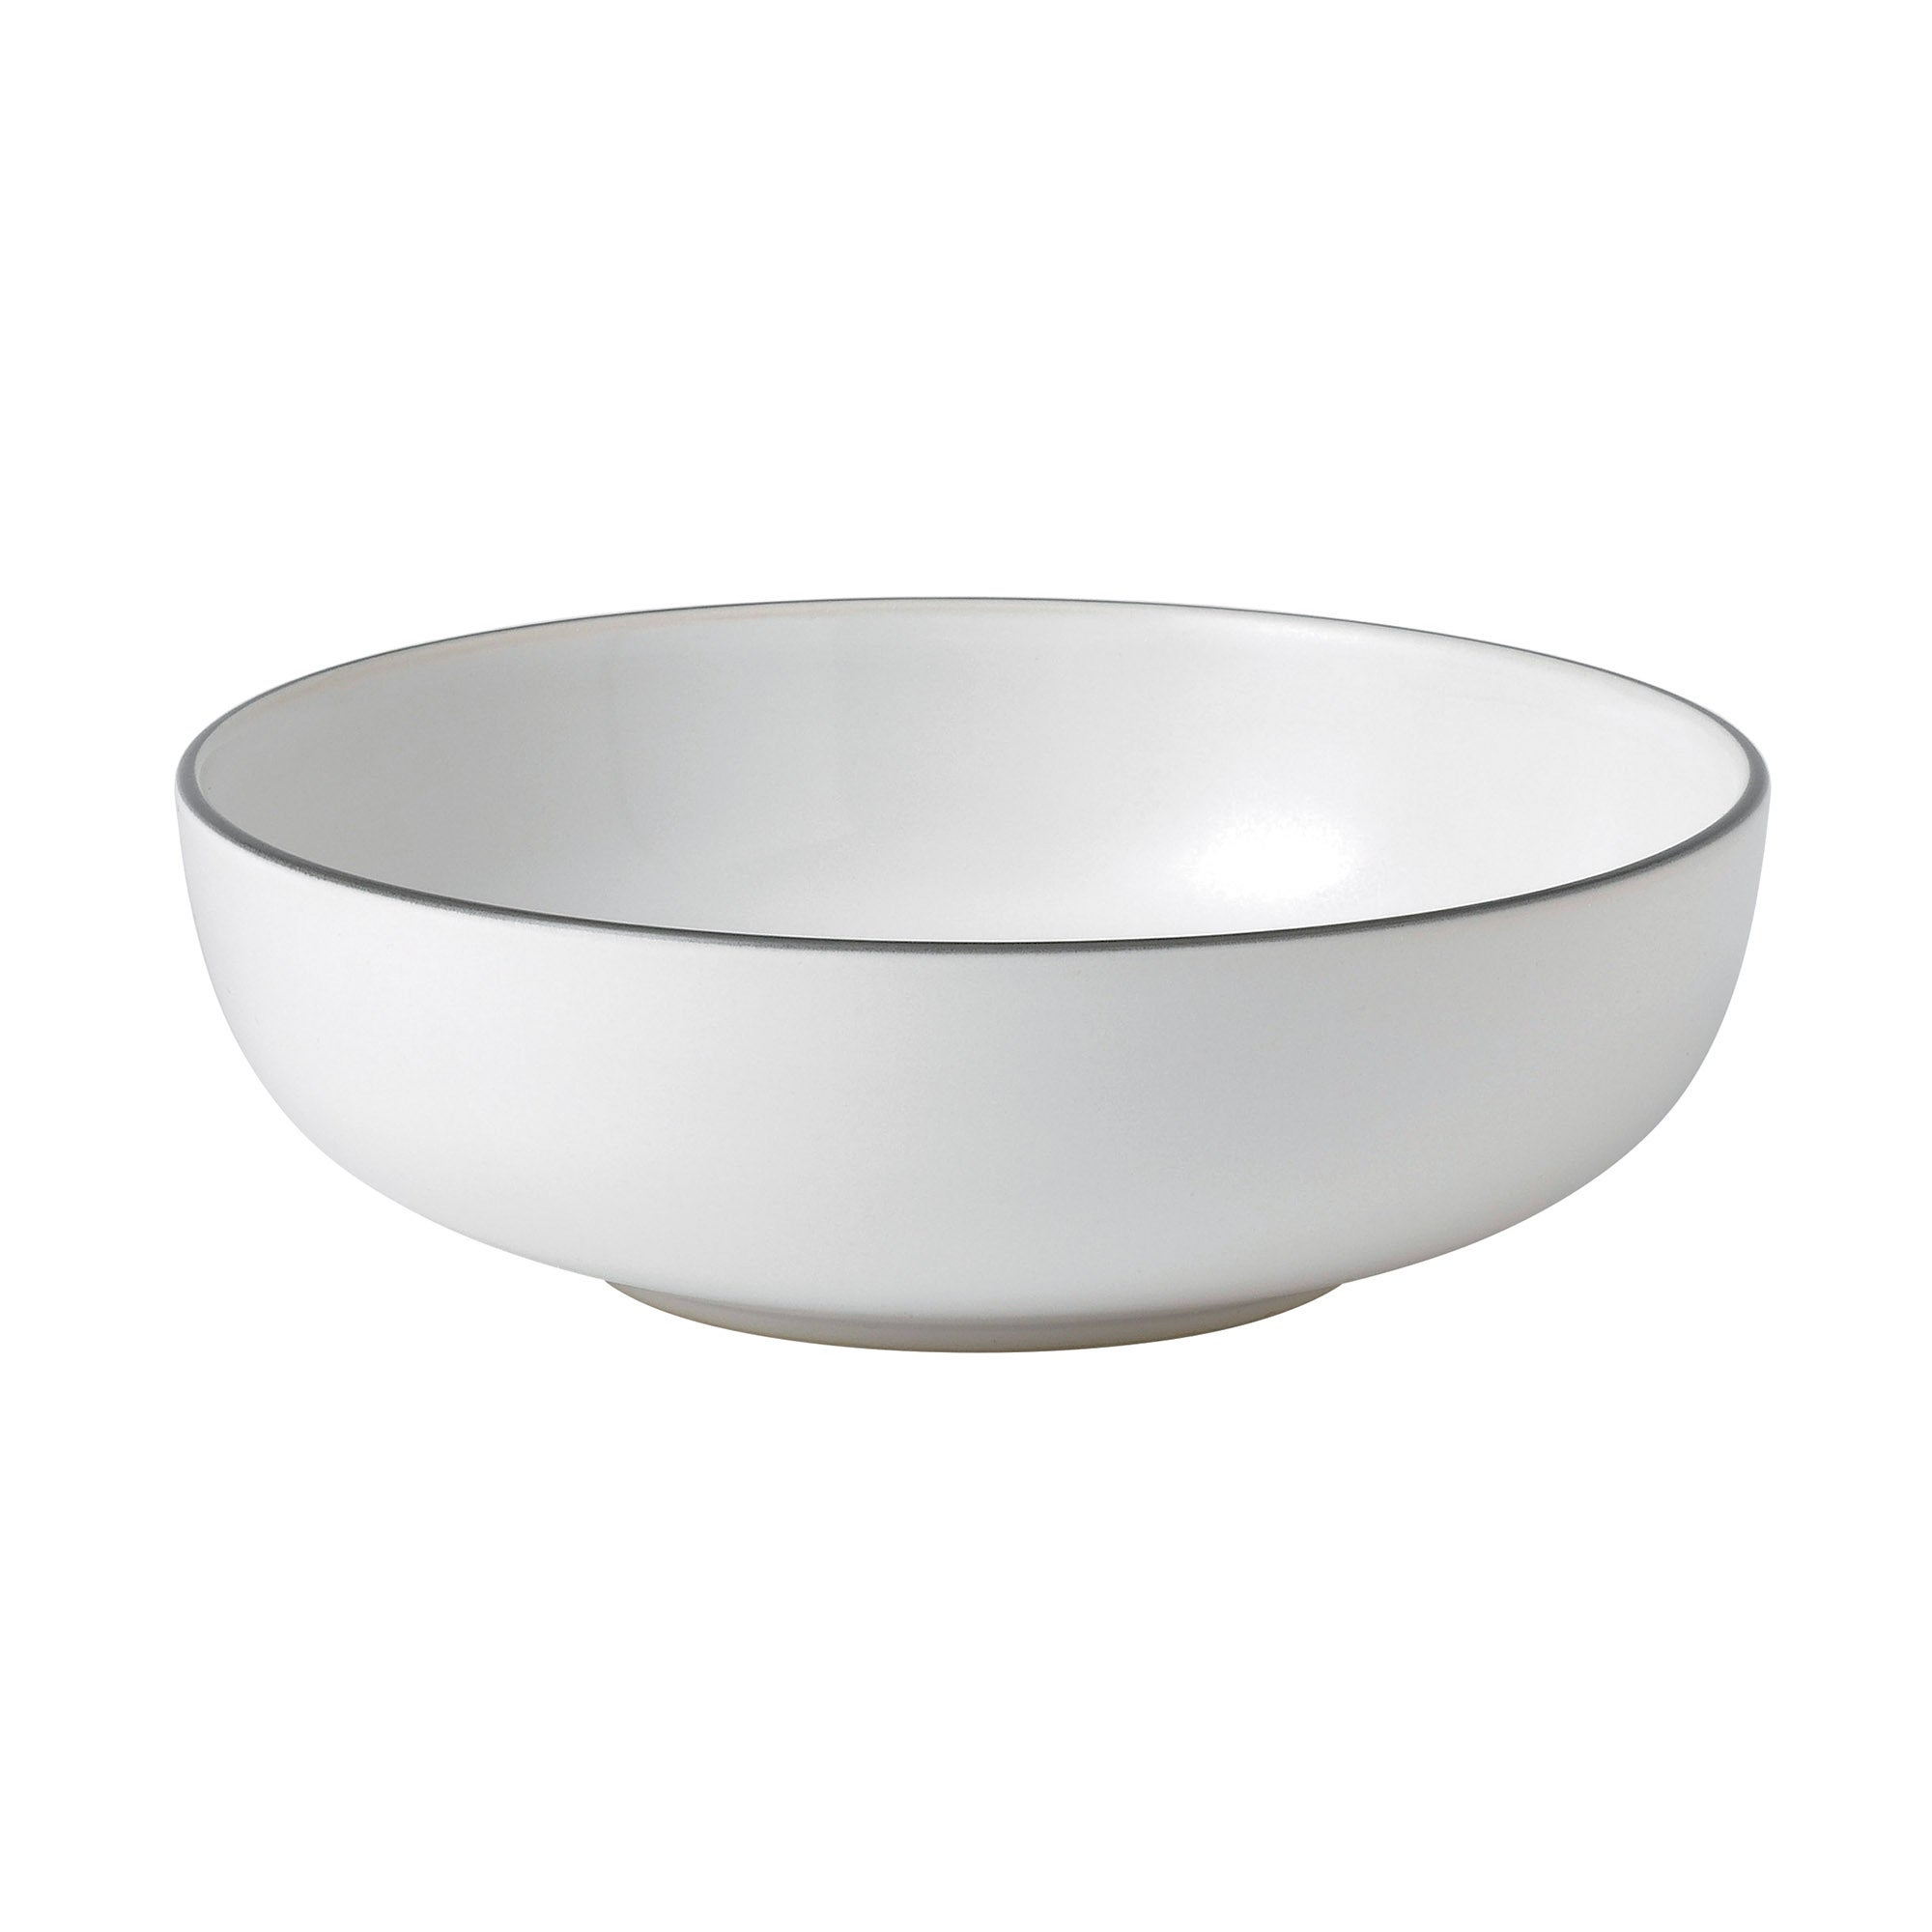 Gordon Ramsay White Bread Street Collection Cereal Bowl